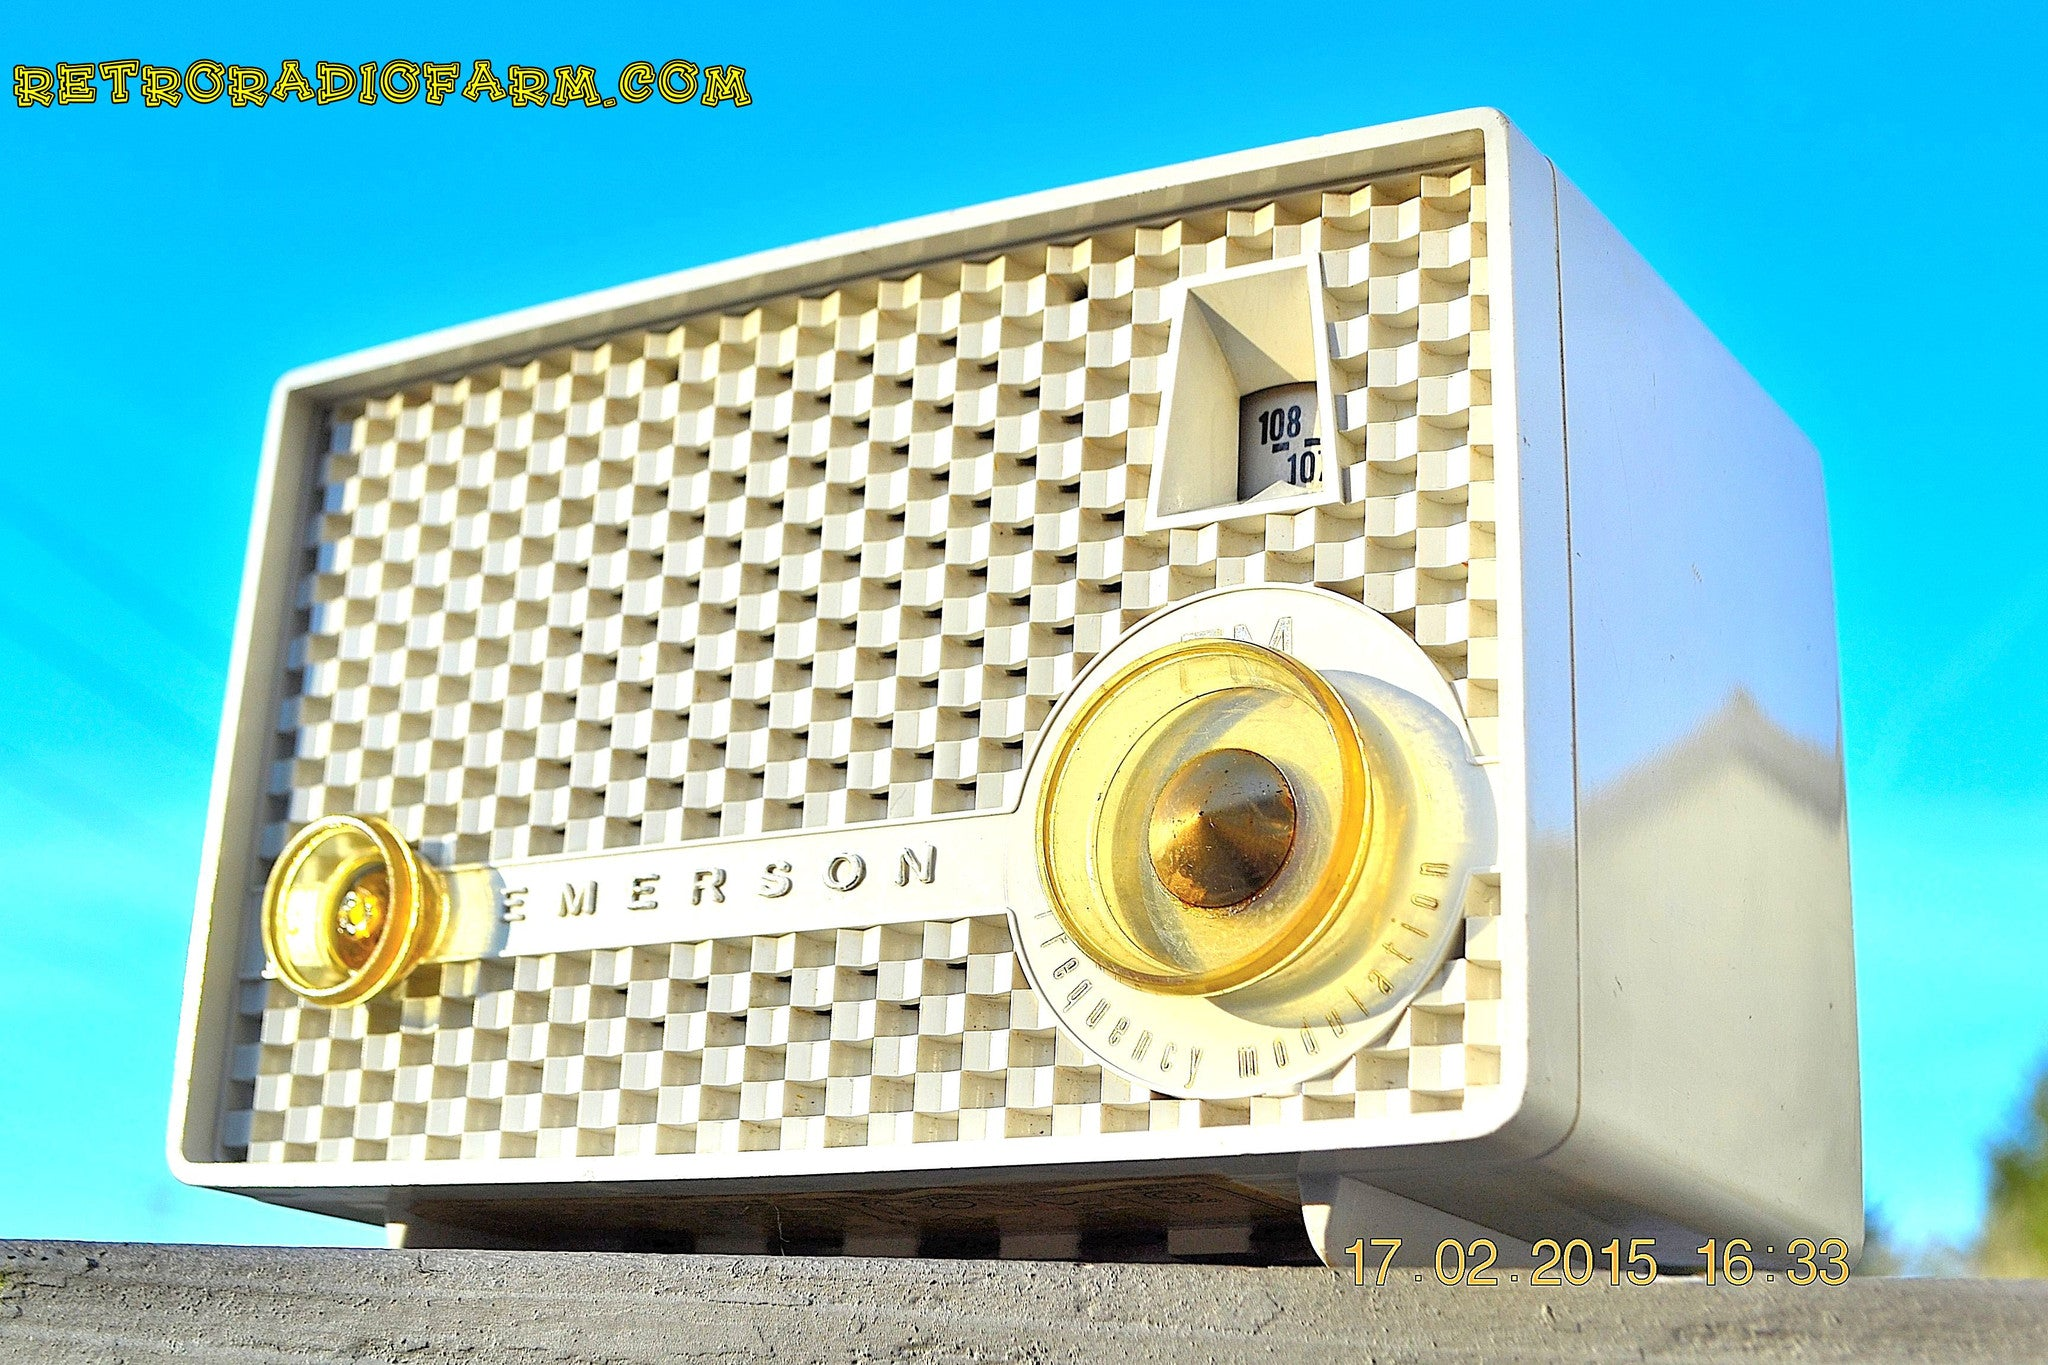 SOLD! - June 15, 2015 - RARE FM ONLY VANILLA WHITE Retro Vintage 1958 Emerson Model 930 Tube Radio WORKS! , Vintage Radio - Emerson, Retro Radio Farm  - 1